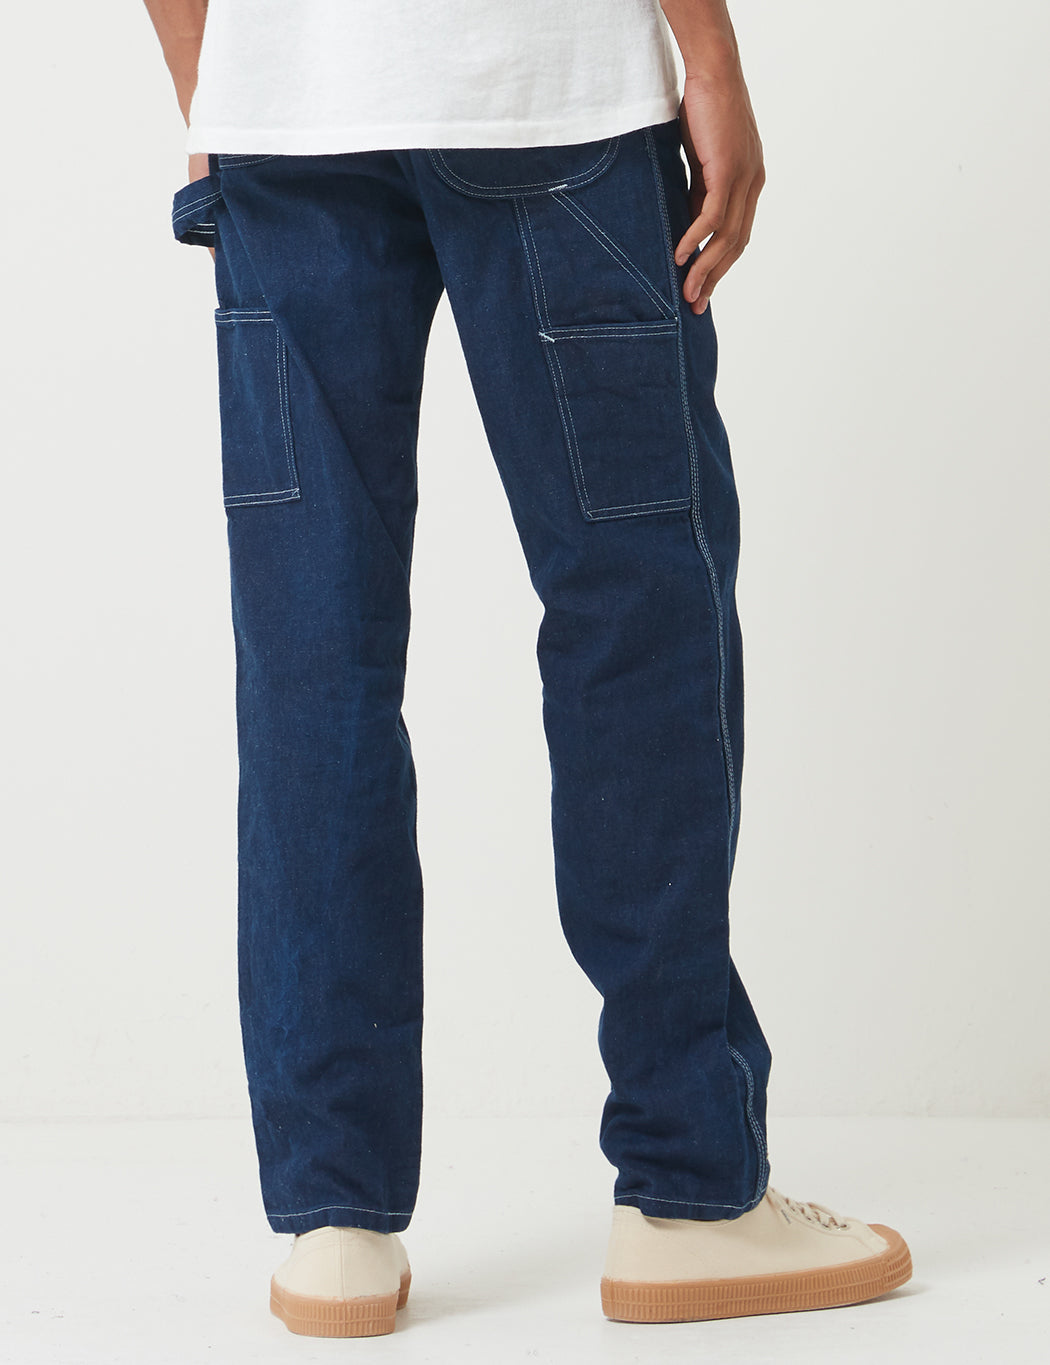 Stan Ray 80's Painter Pant (Straight) - 10 oz Denim